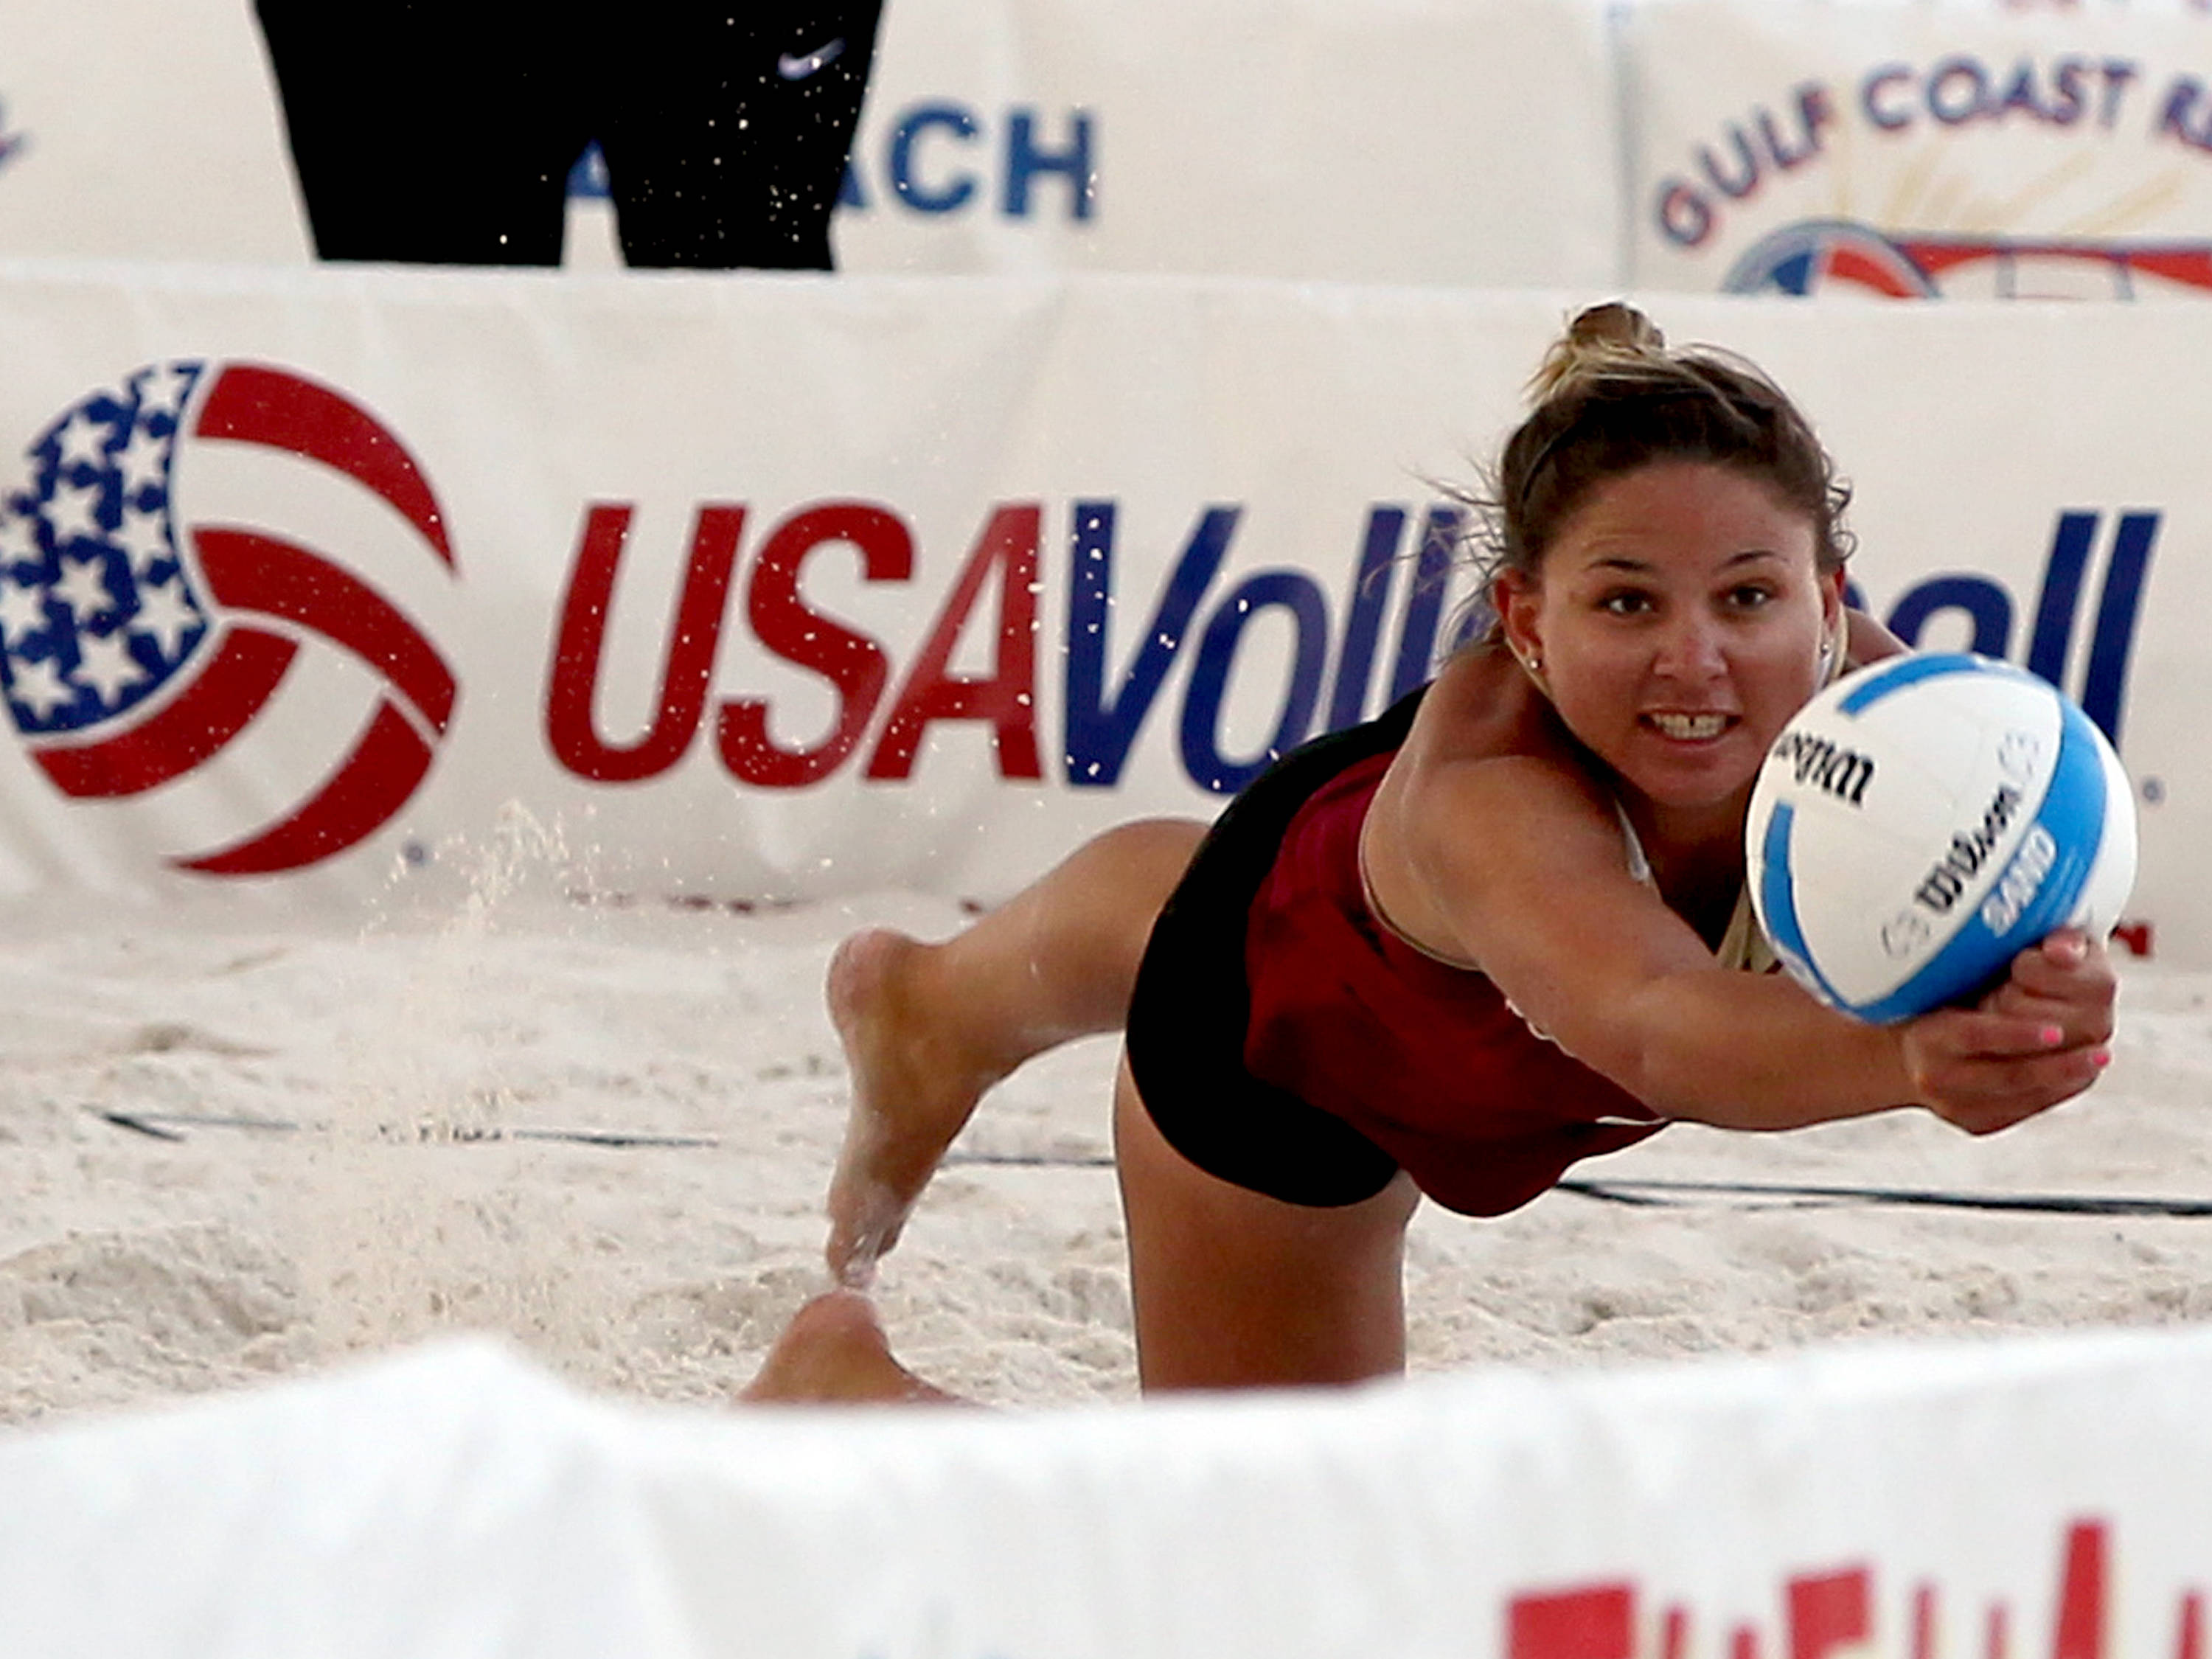 Melanie Pavels, AVCA Collegiate Sand Volleyball National  Championships - Pairs,  Gulf Shores, Alabama, 05/05/13 . (Photo by Steve Musco)